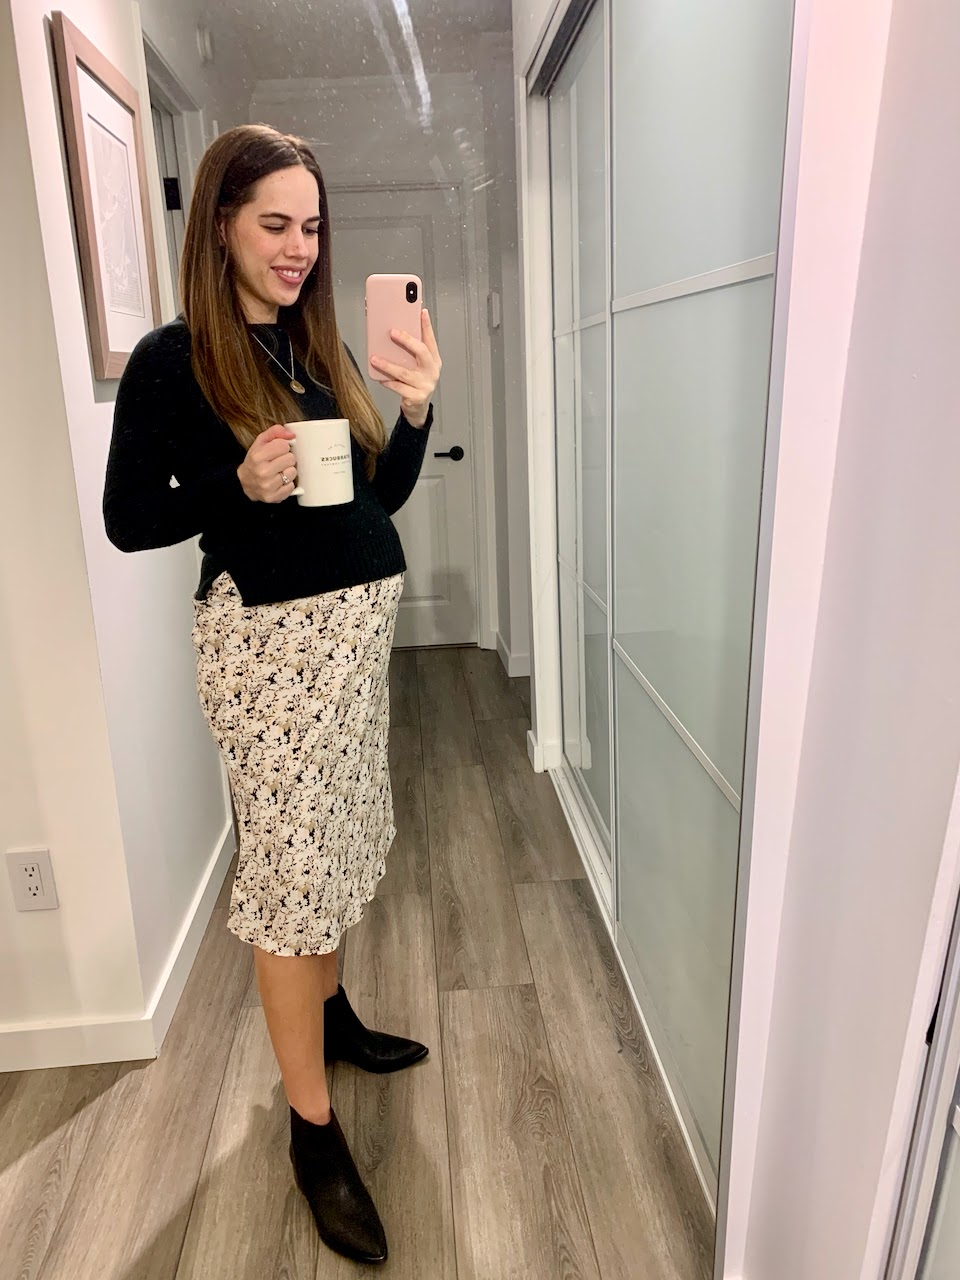 Jules in Flats - Floral Midi Skirt with Cropped Knit Sweater and Booties (Business Casual Workwear on a Budget)